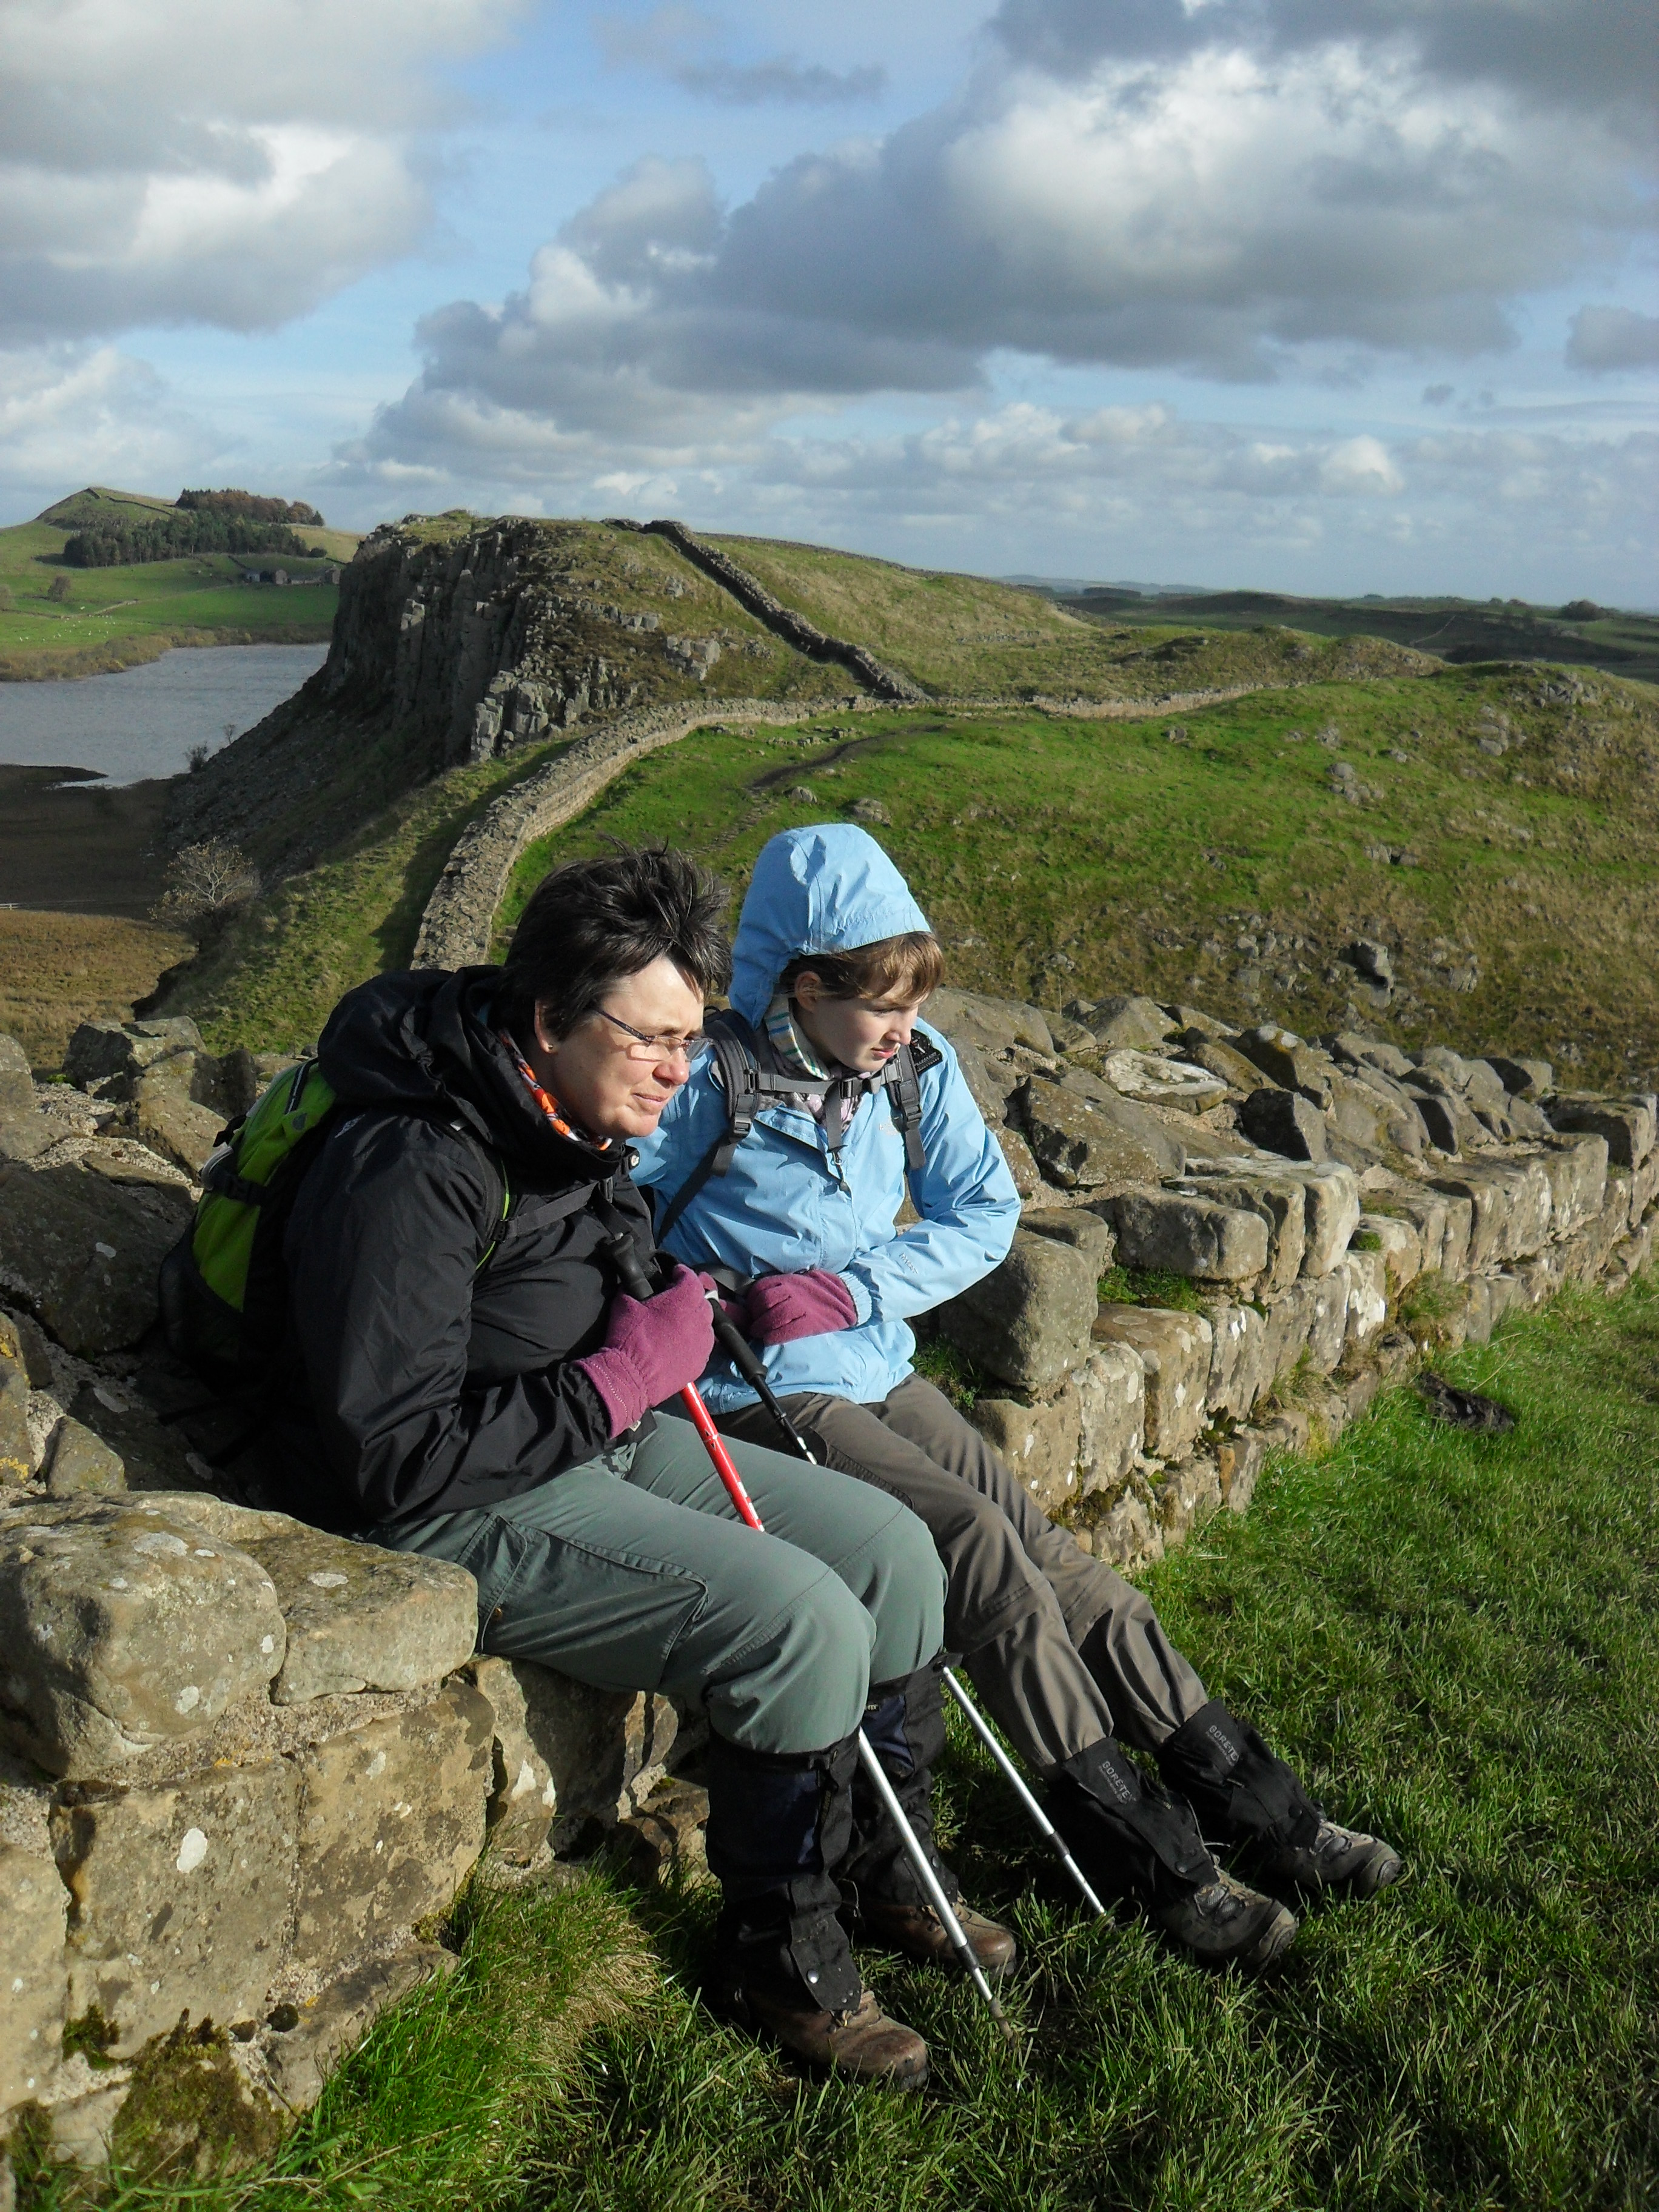 No visit to Northumberland can be complete without visiting the Roman Wall. We walked part of it in 2010 and we all said that one day we would return to explore further